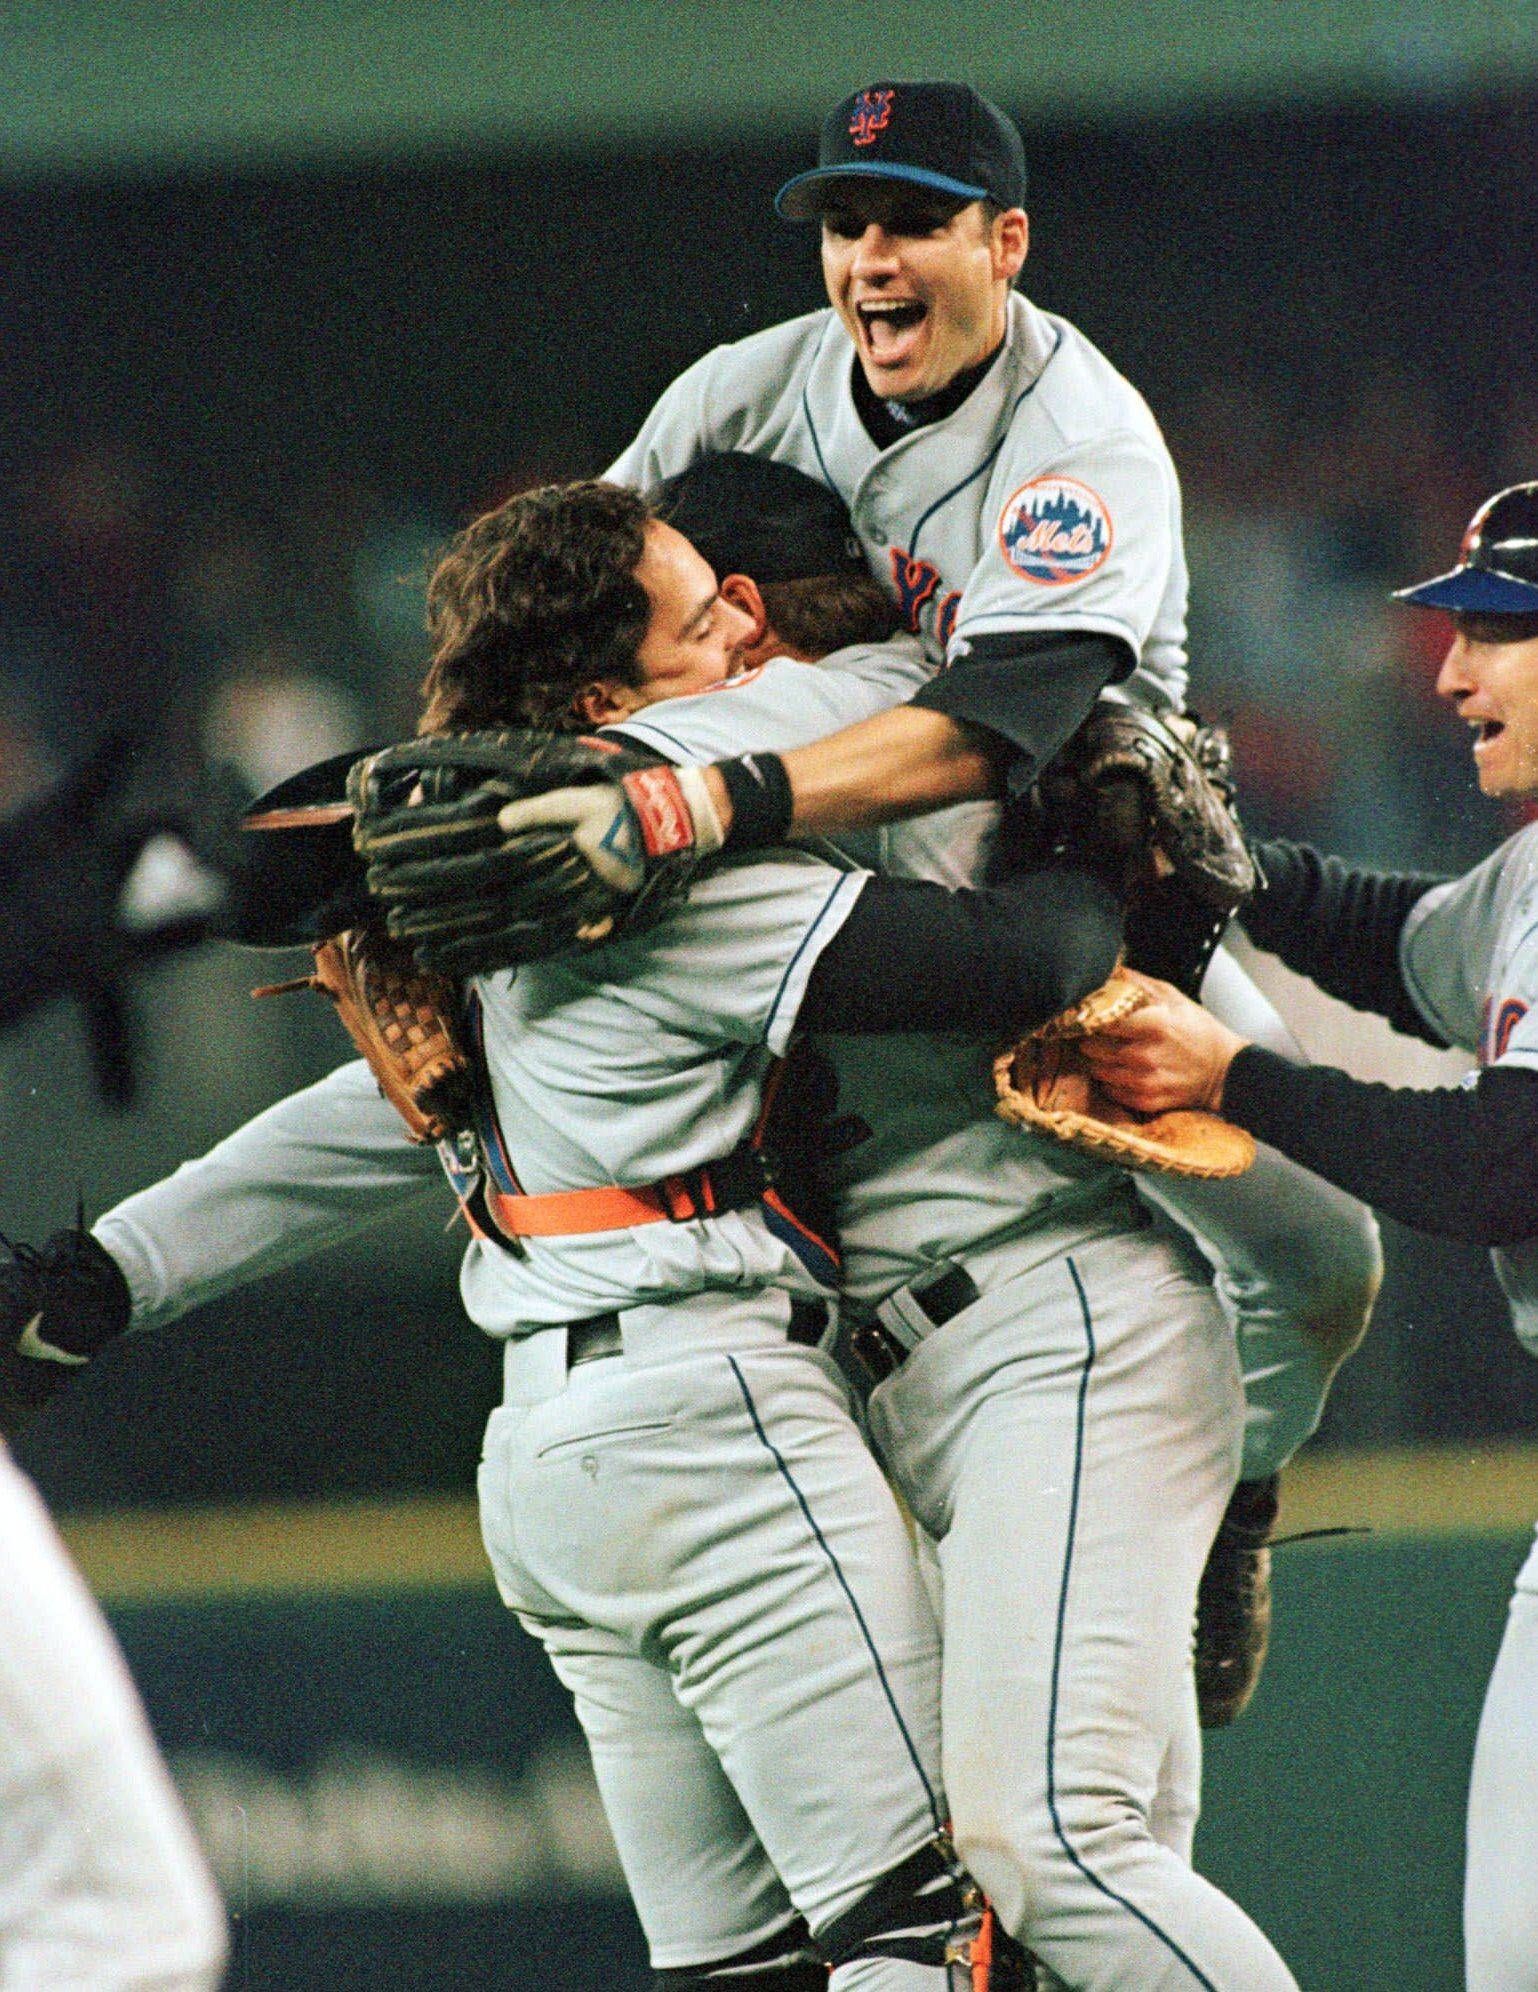 New York Mets Robin Ventura jumps on top of catcher Mike Piazza and pitcher Al Leiter after the Mets defeated the Cincinnati Reds 5-0, Monday, Oct. 4,1999, in Cincinnati. John Olerud is at right.